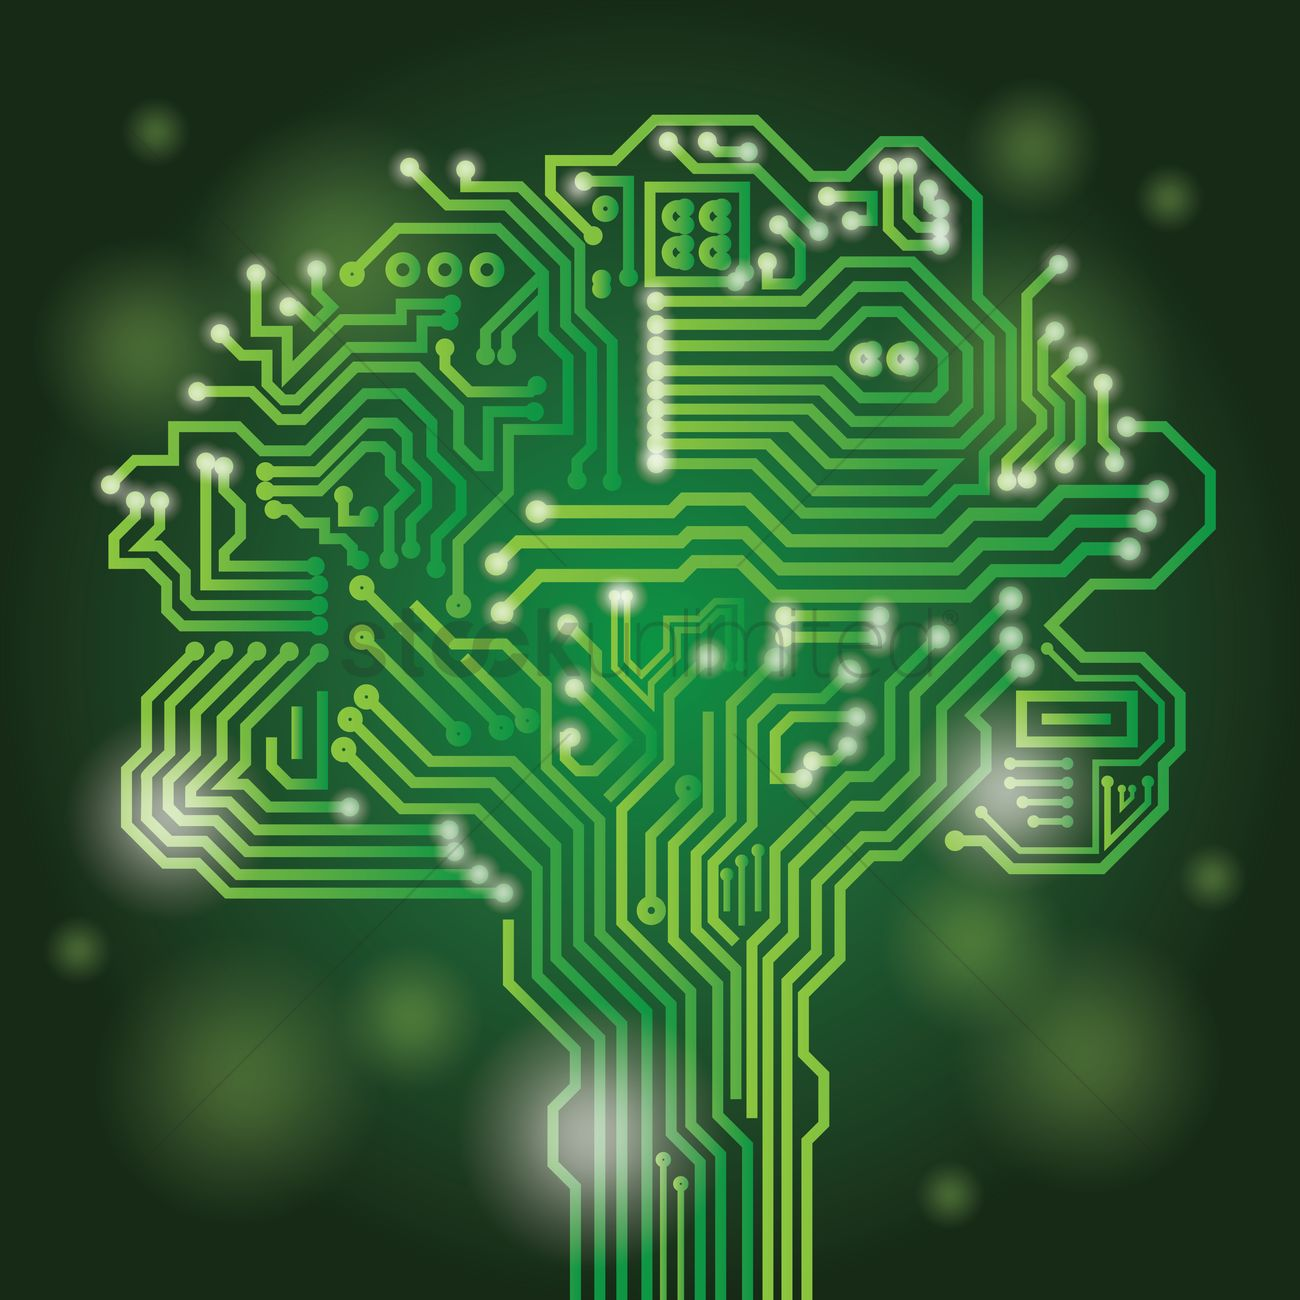 Circuit Board Tree Design Vector Image 1948517 Stockunlimited The Graphic